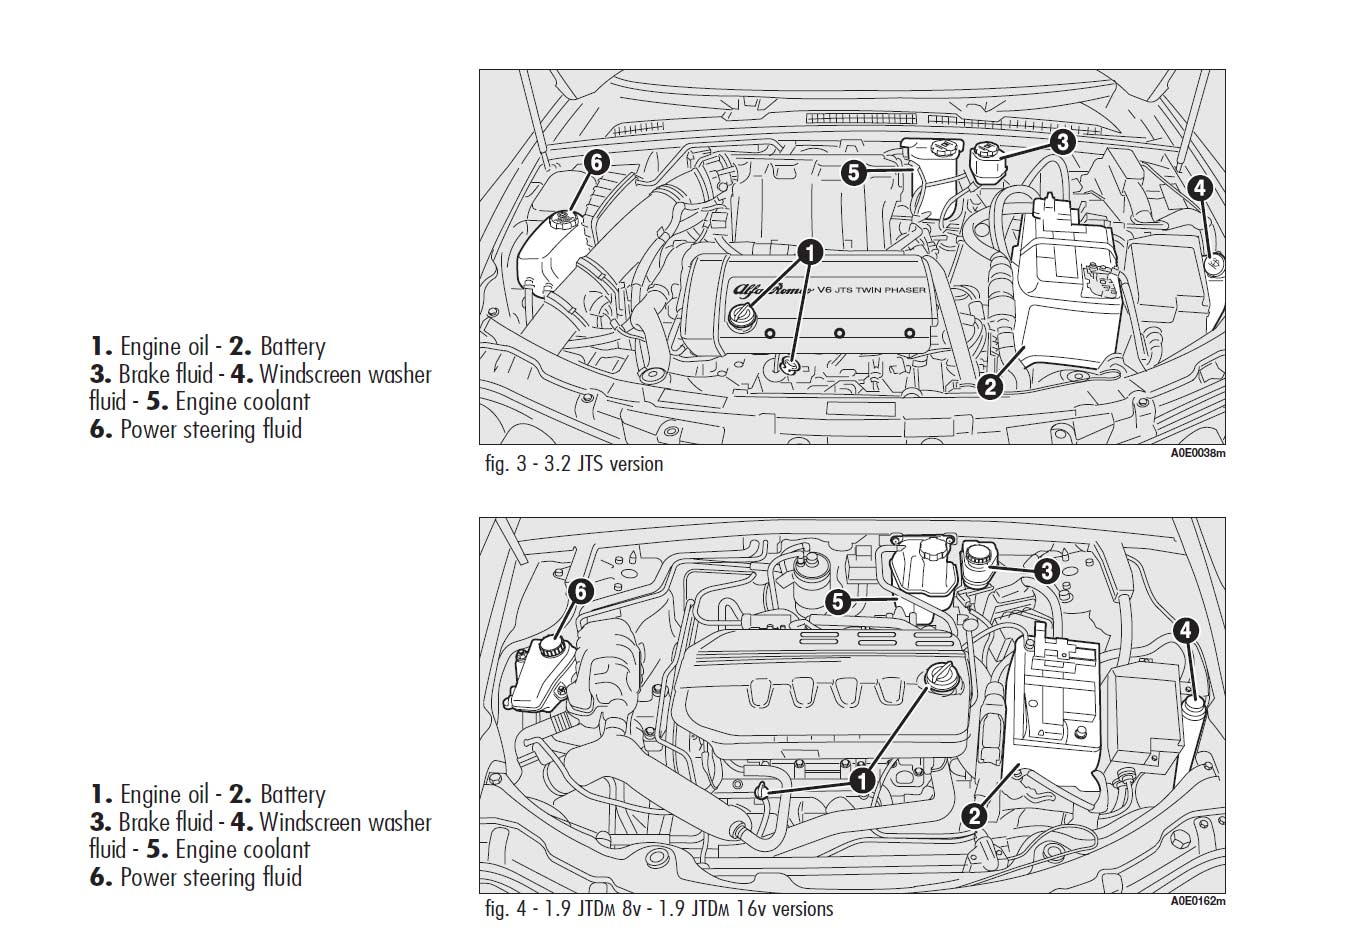 Alfa 159 Car Battery Location | ABS Batteries Alfa Romeo Engine Diagram on aston martin engine, ford car engine, gt40 engine, ferrari engine, international engine, j.a.p. engine, isuzu engine, maybach engine, chrysler engine, alfa v6, proton engine, vw engine, maserati engine, formula 2 engine, bugatti engine, acura engine, peugeot engine, panhard engine, can am engine, fiat engine,